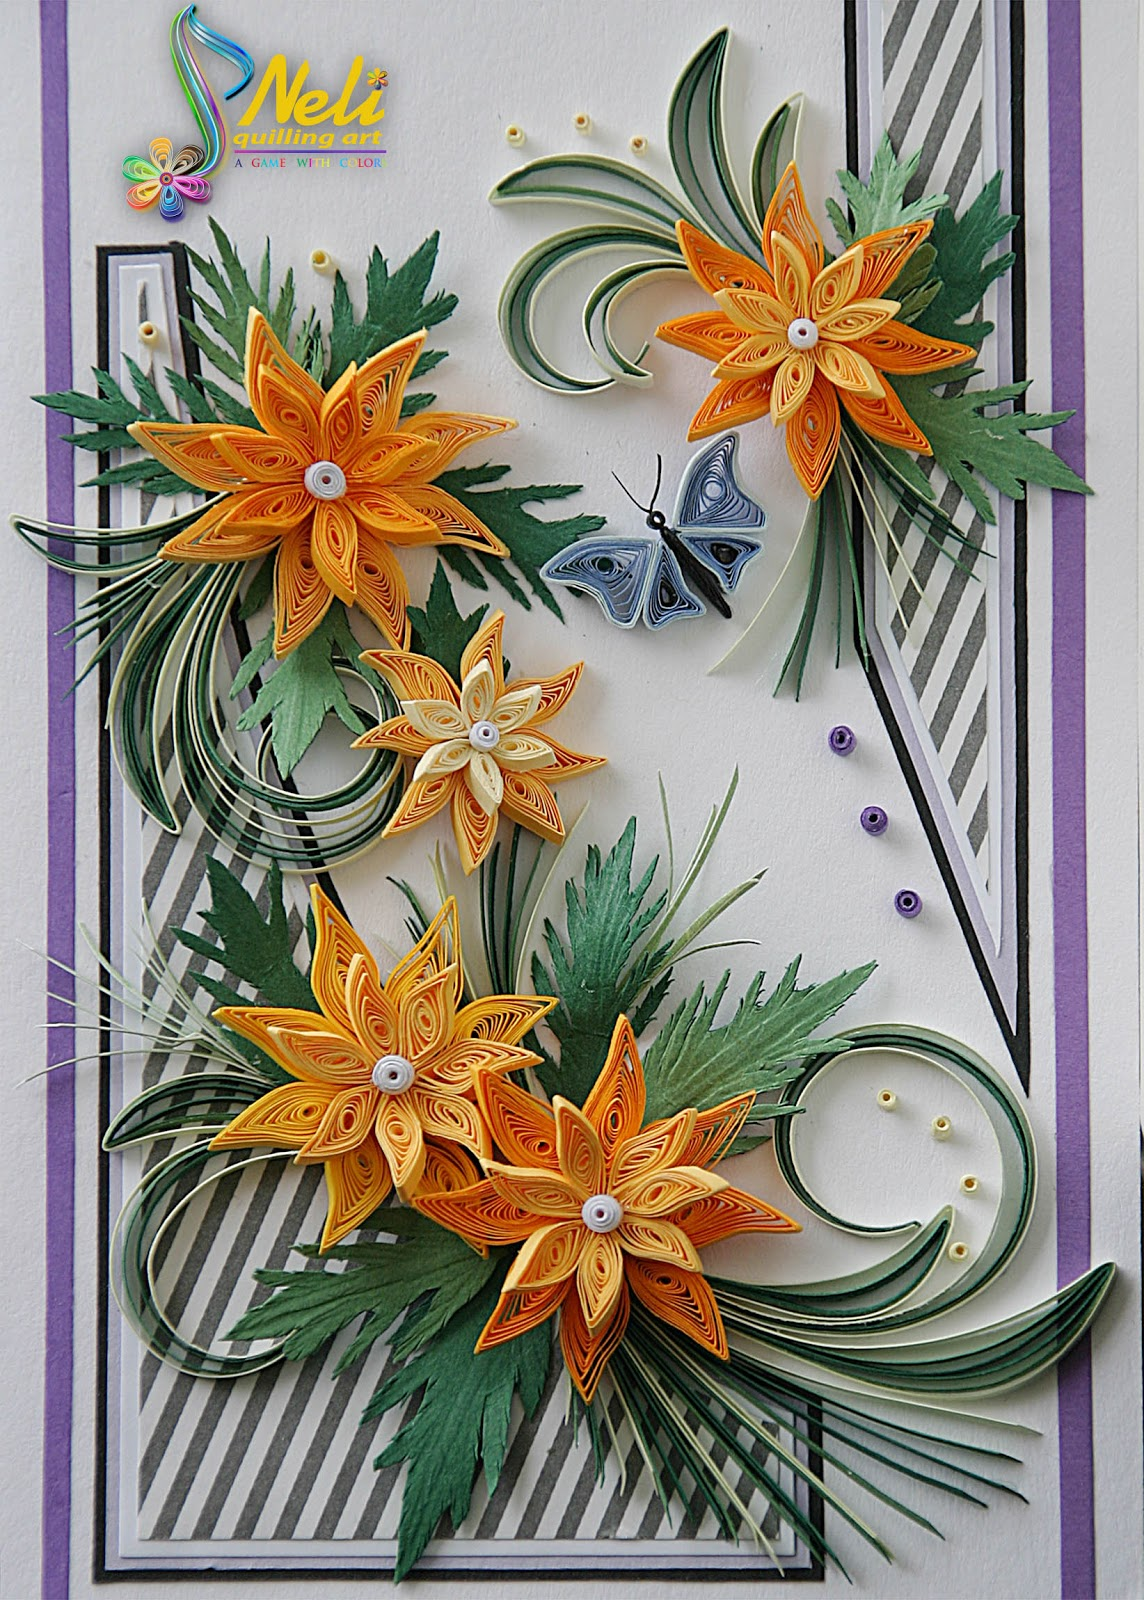 how to make neli quilling